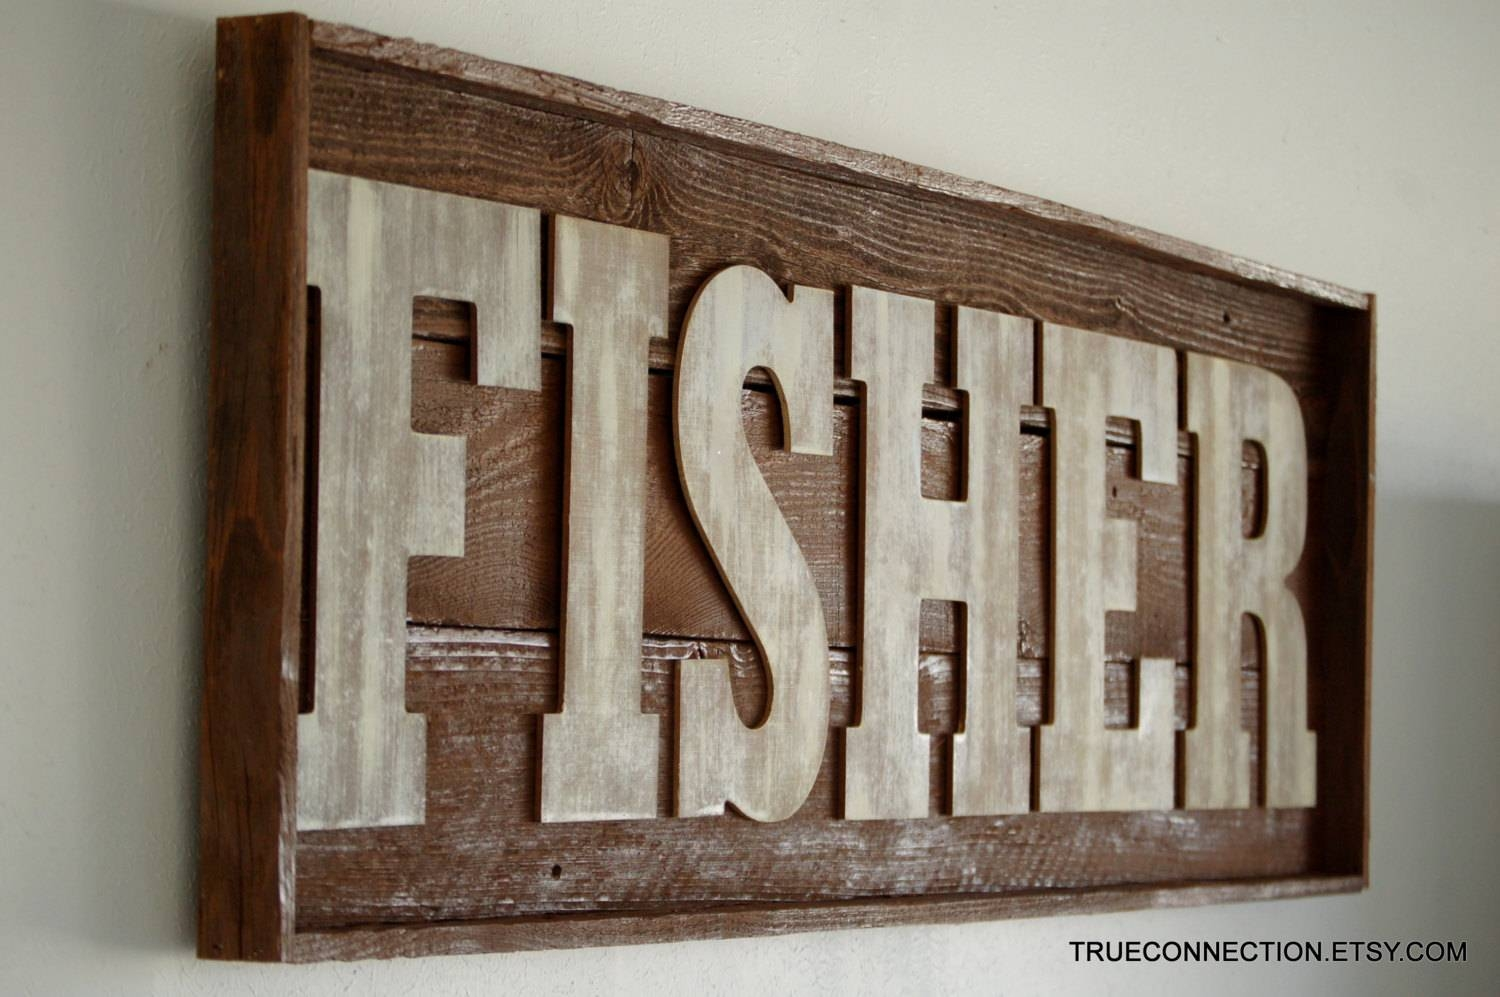 Wall Art Designs: Personalized Wood Wall Art Wall Art Name Sign Intended For Most Recently Released Personalized Wall Art With Names (View 4 of 20)